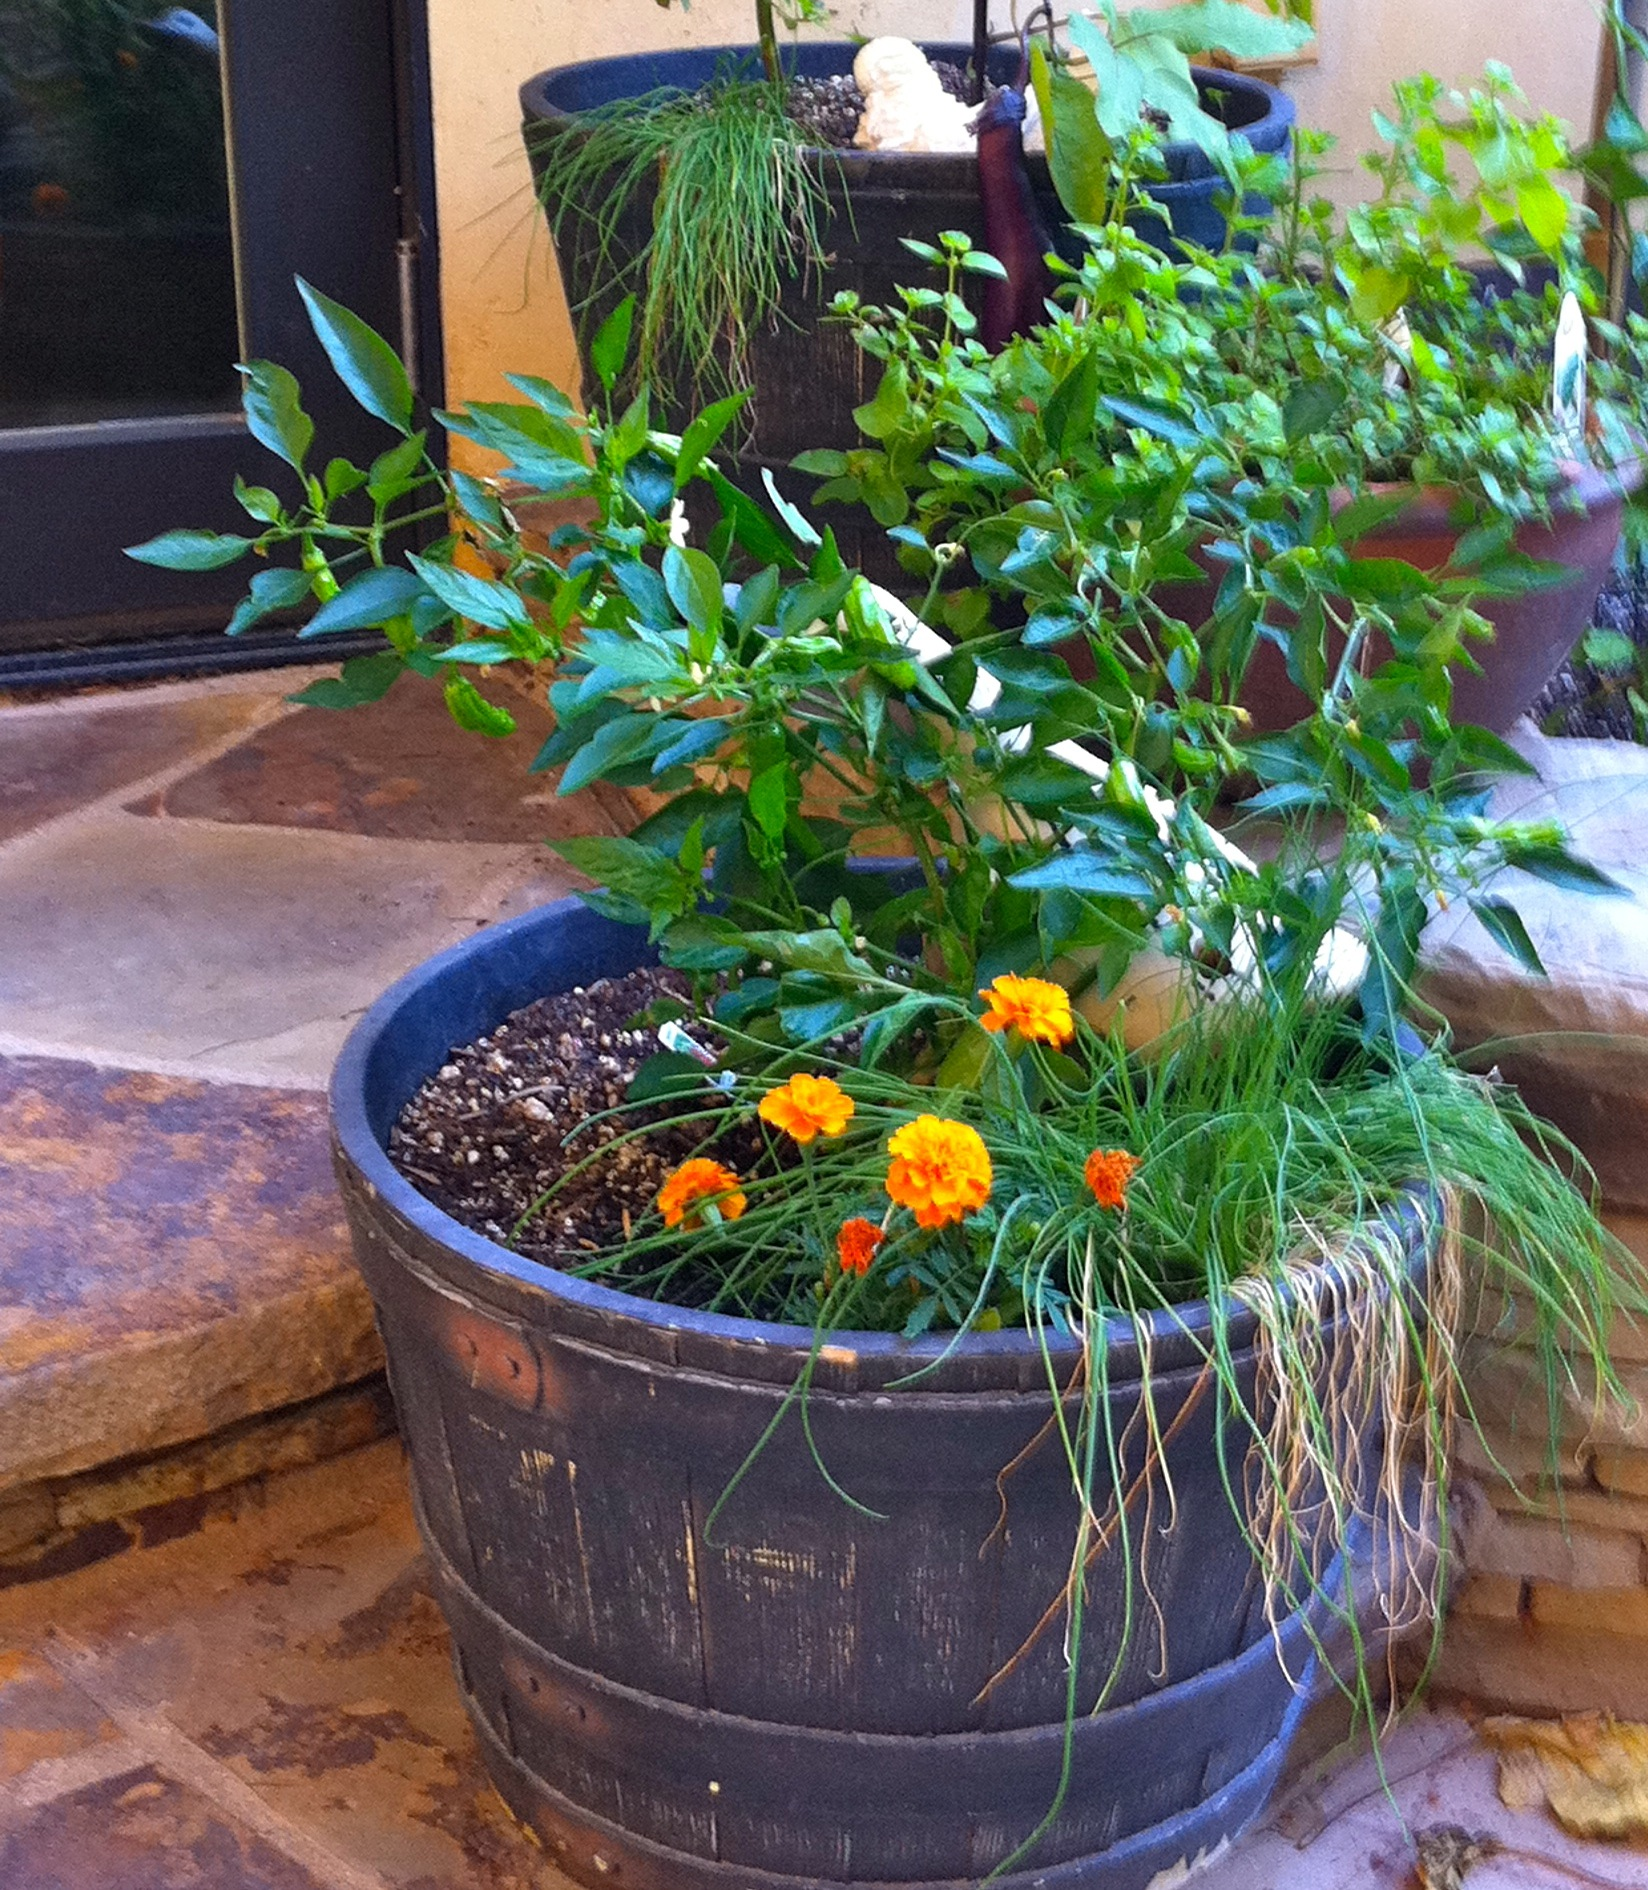 Growing Peppers In Your Vegetable Garden: Shishito Peppers Growing In A Whiskey Barrel Garden